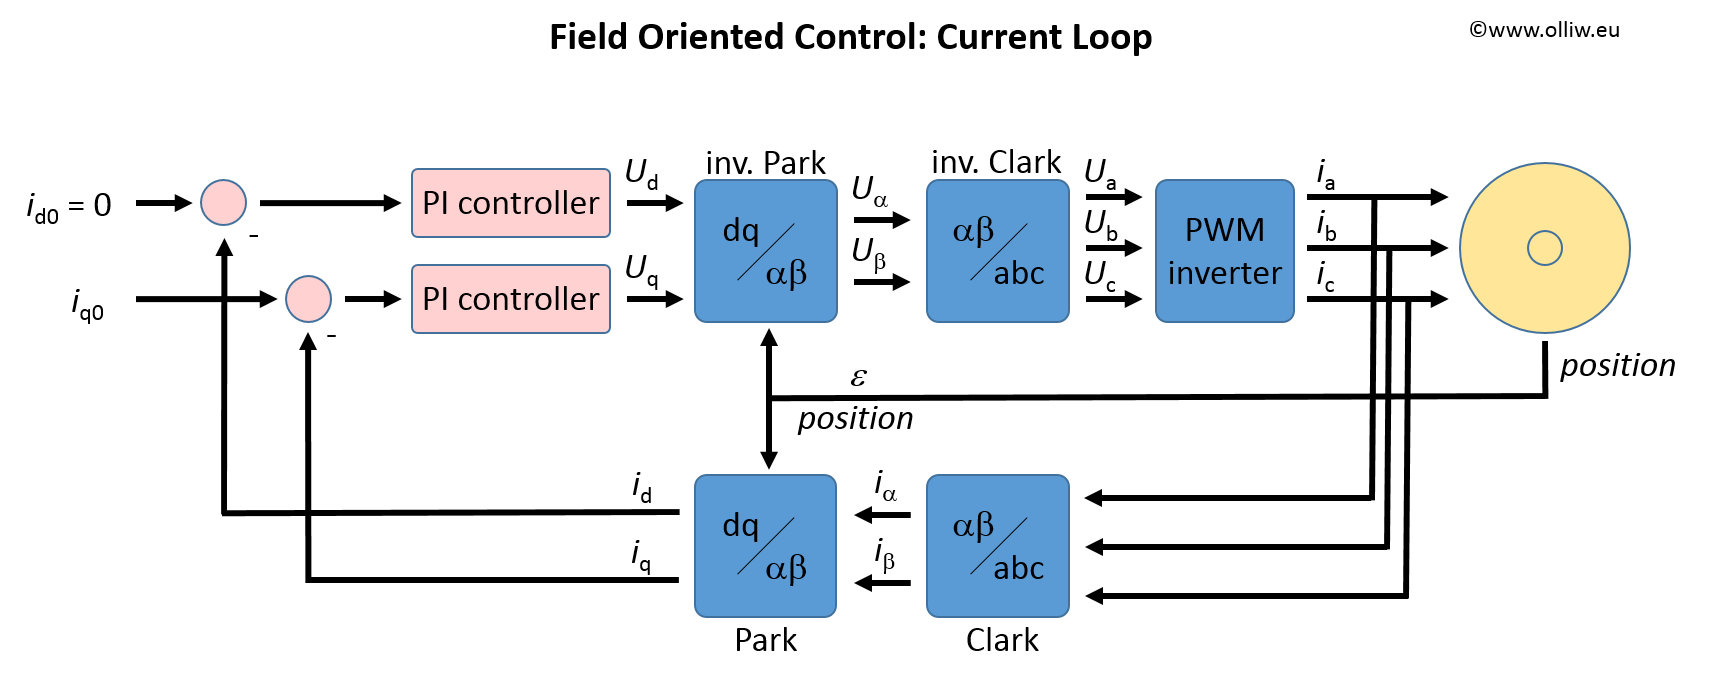 OlliW's Bastelseiten » Field Oriented Control: To FOC or not